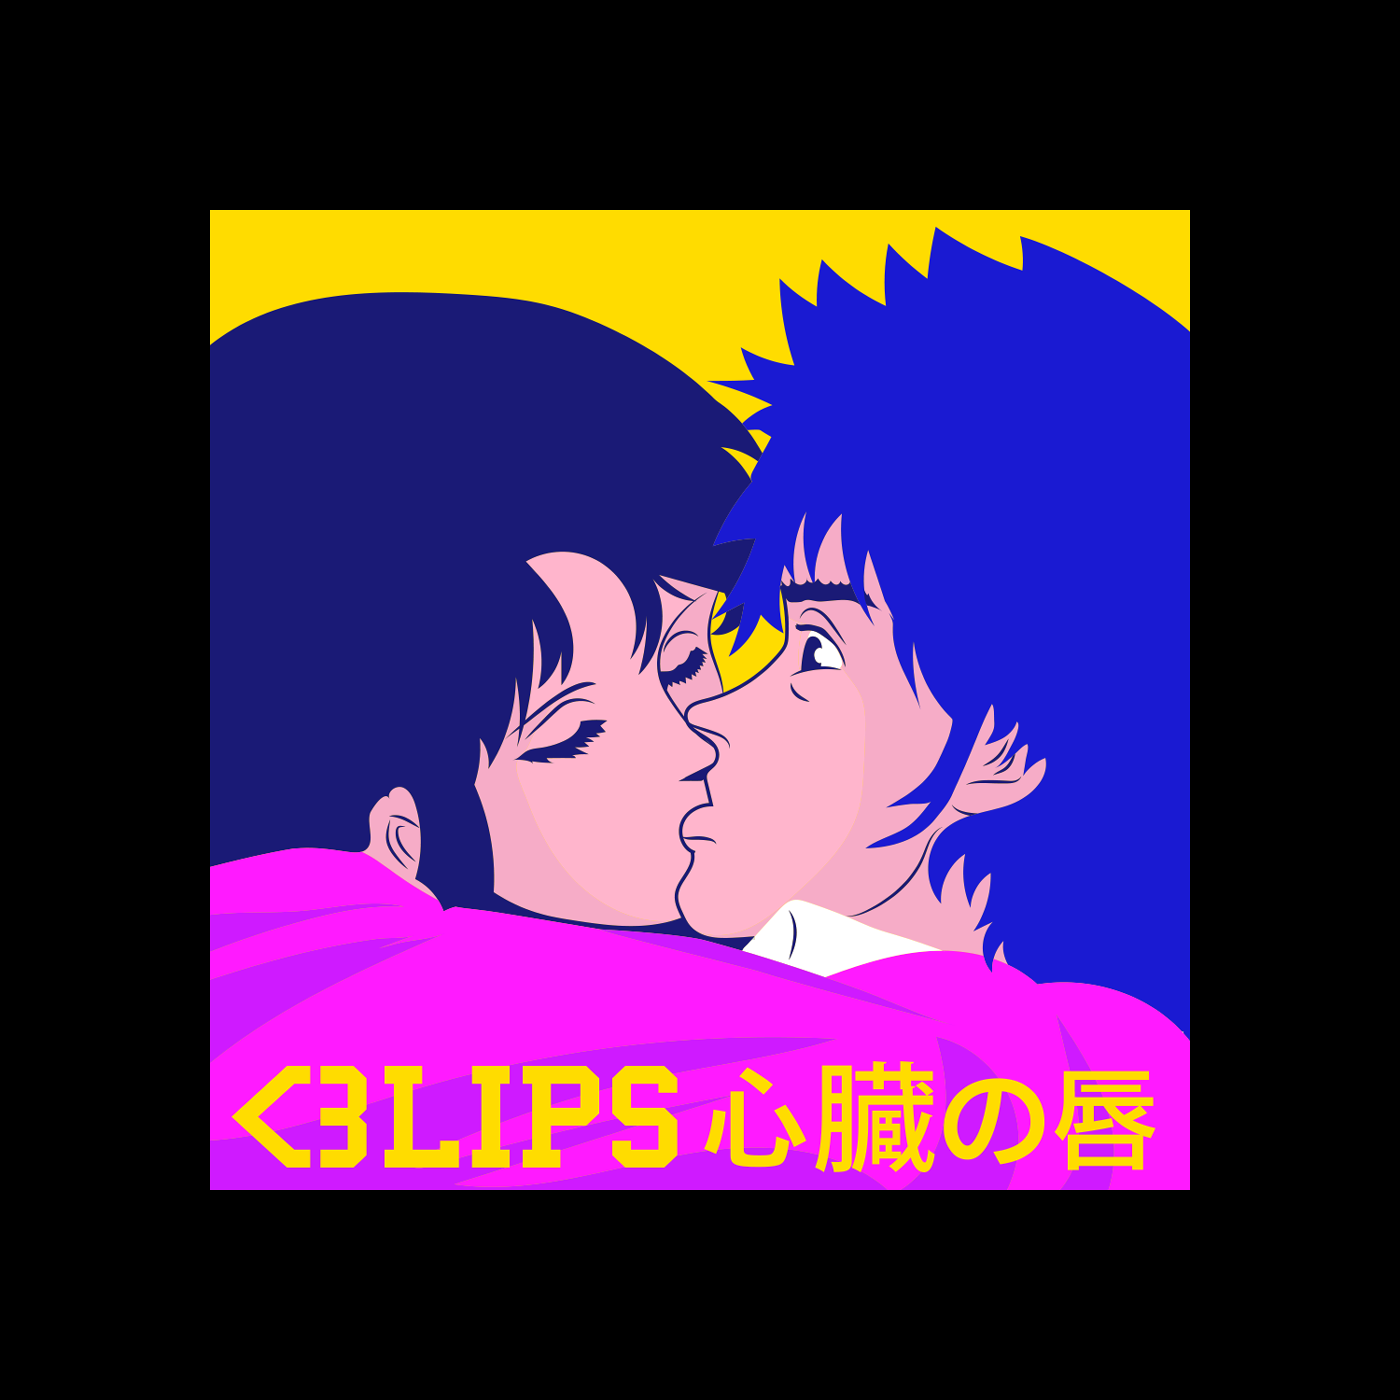 lips-manga-new